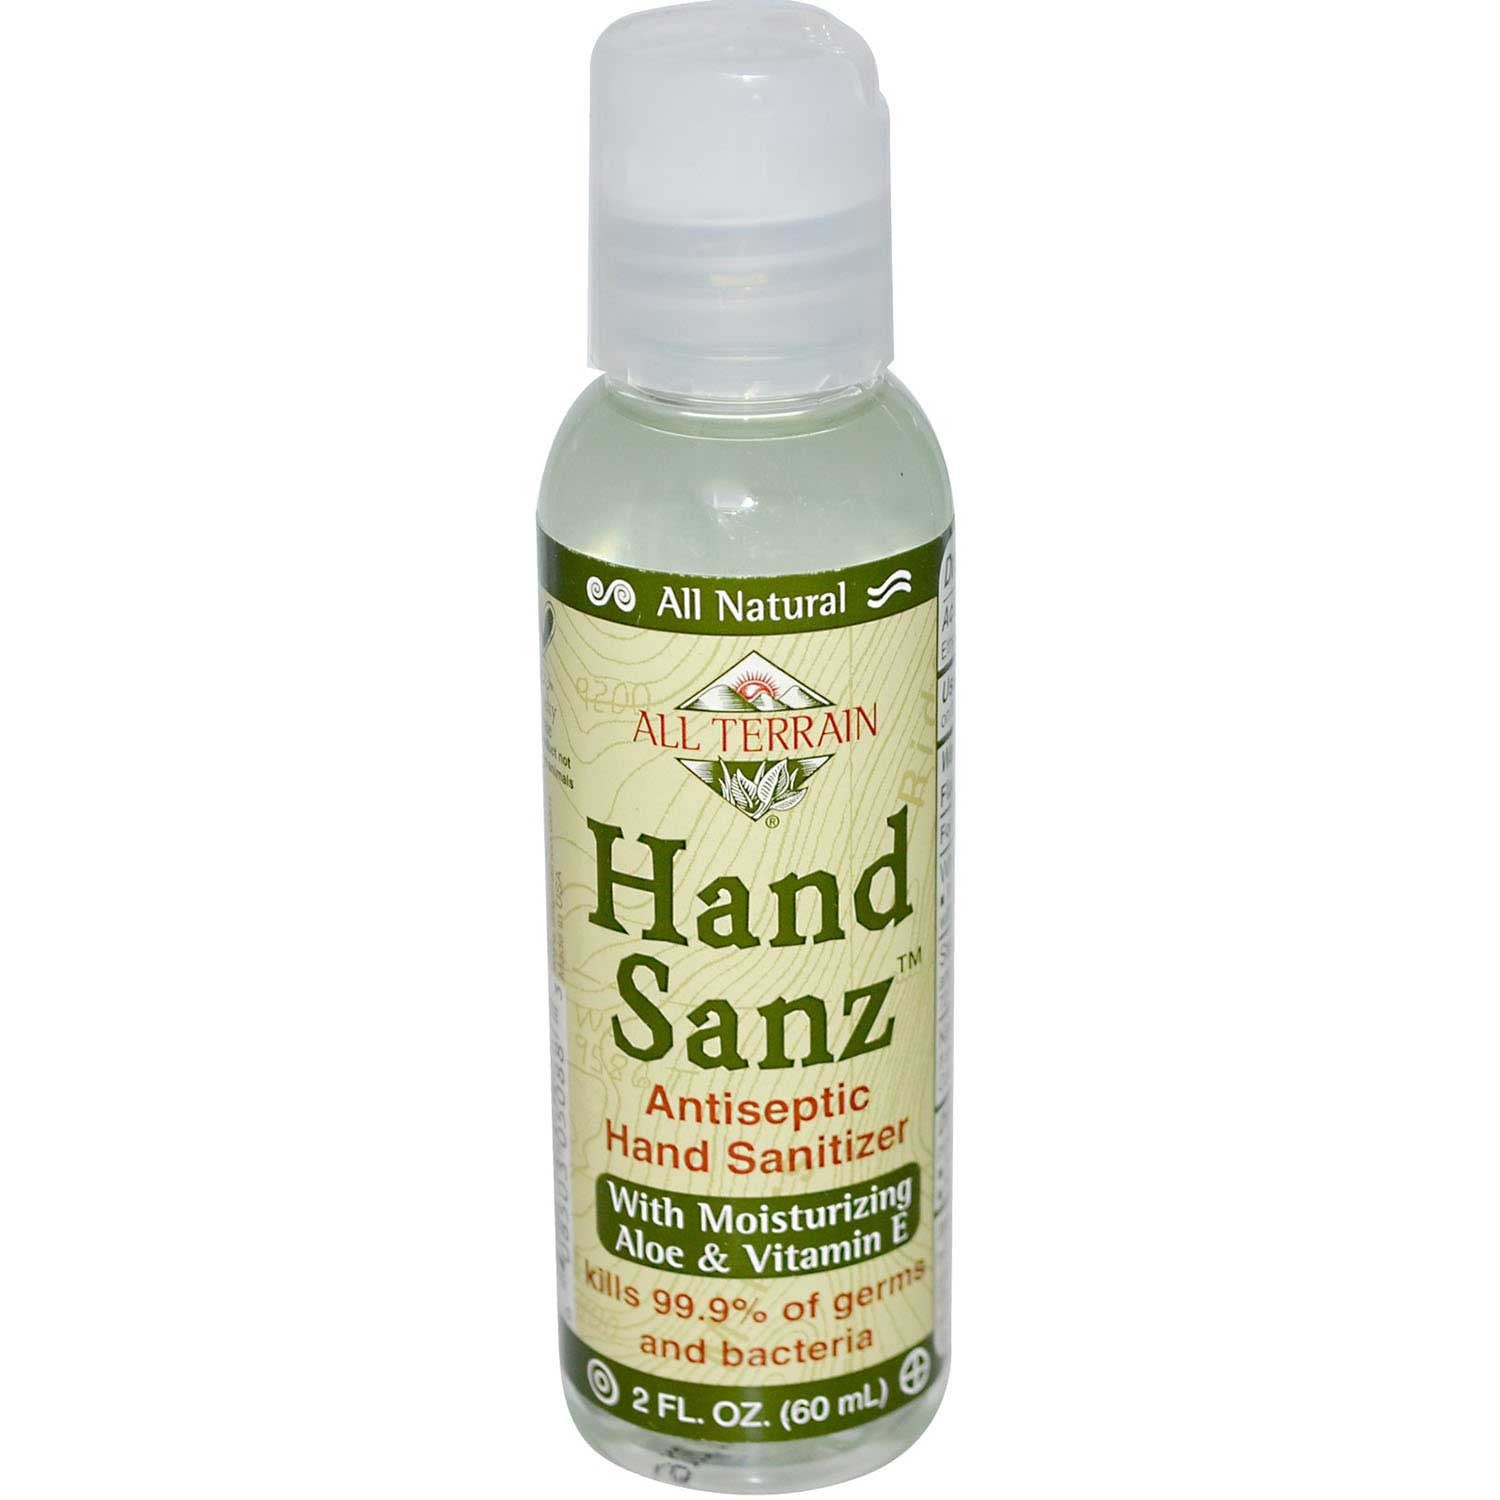 All Terrain Hand Sanz with Aloe & Vitamin E, 60 ml.